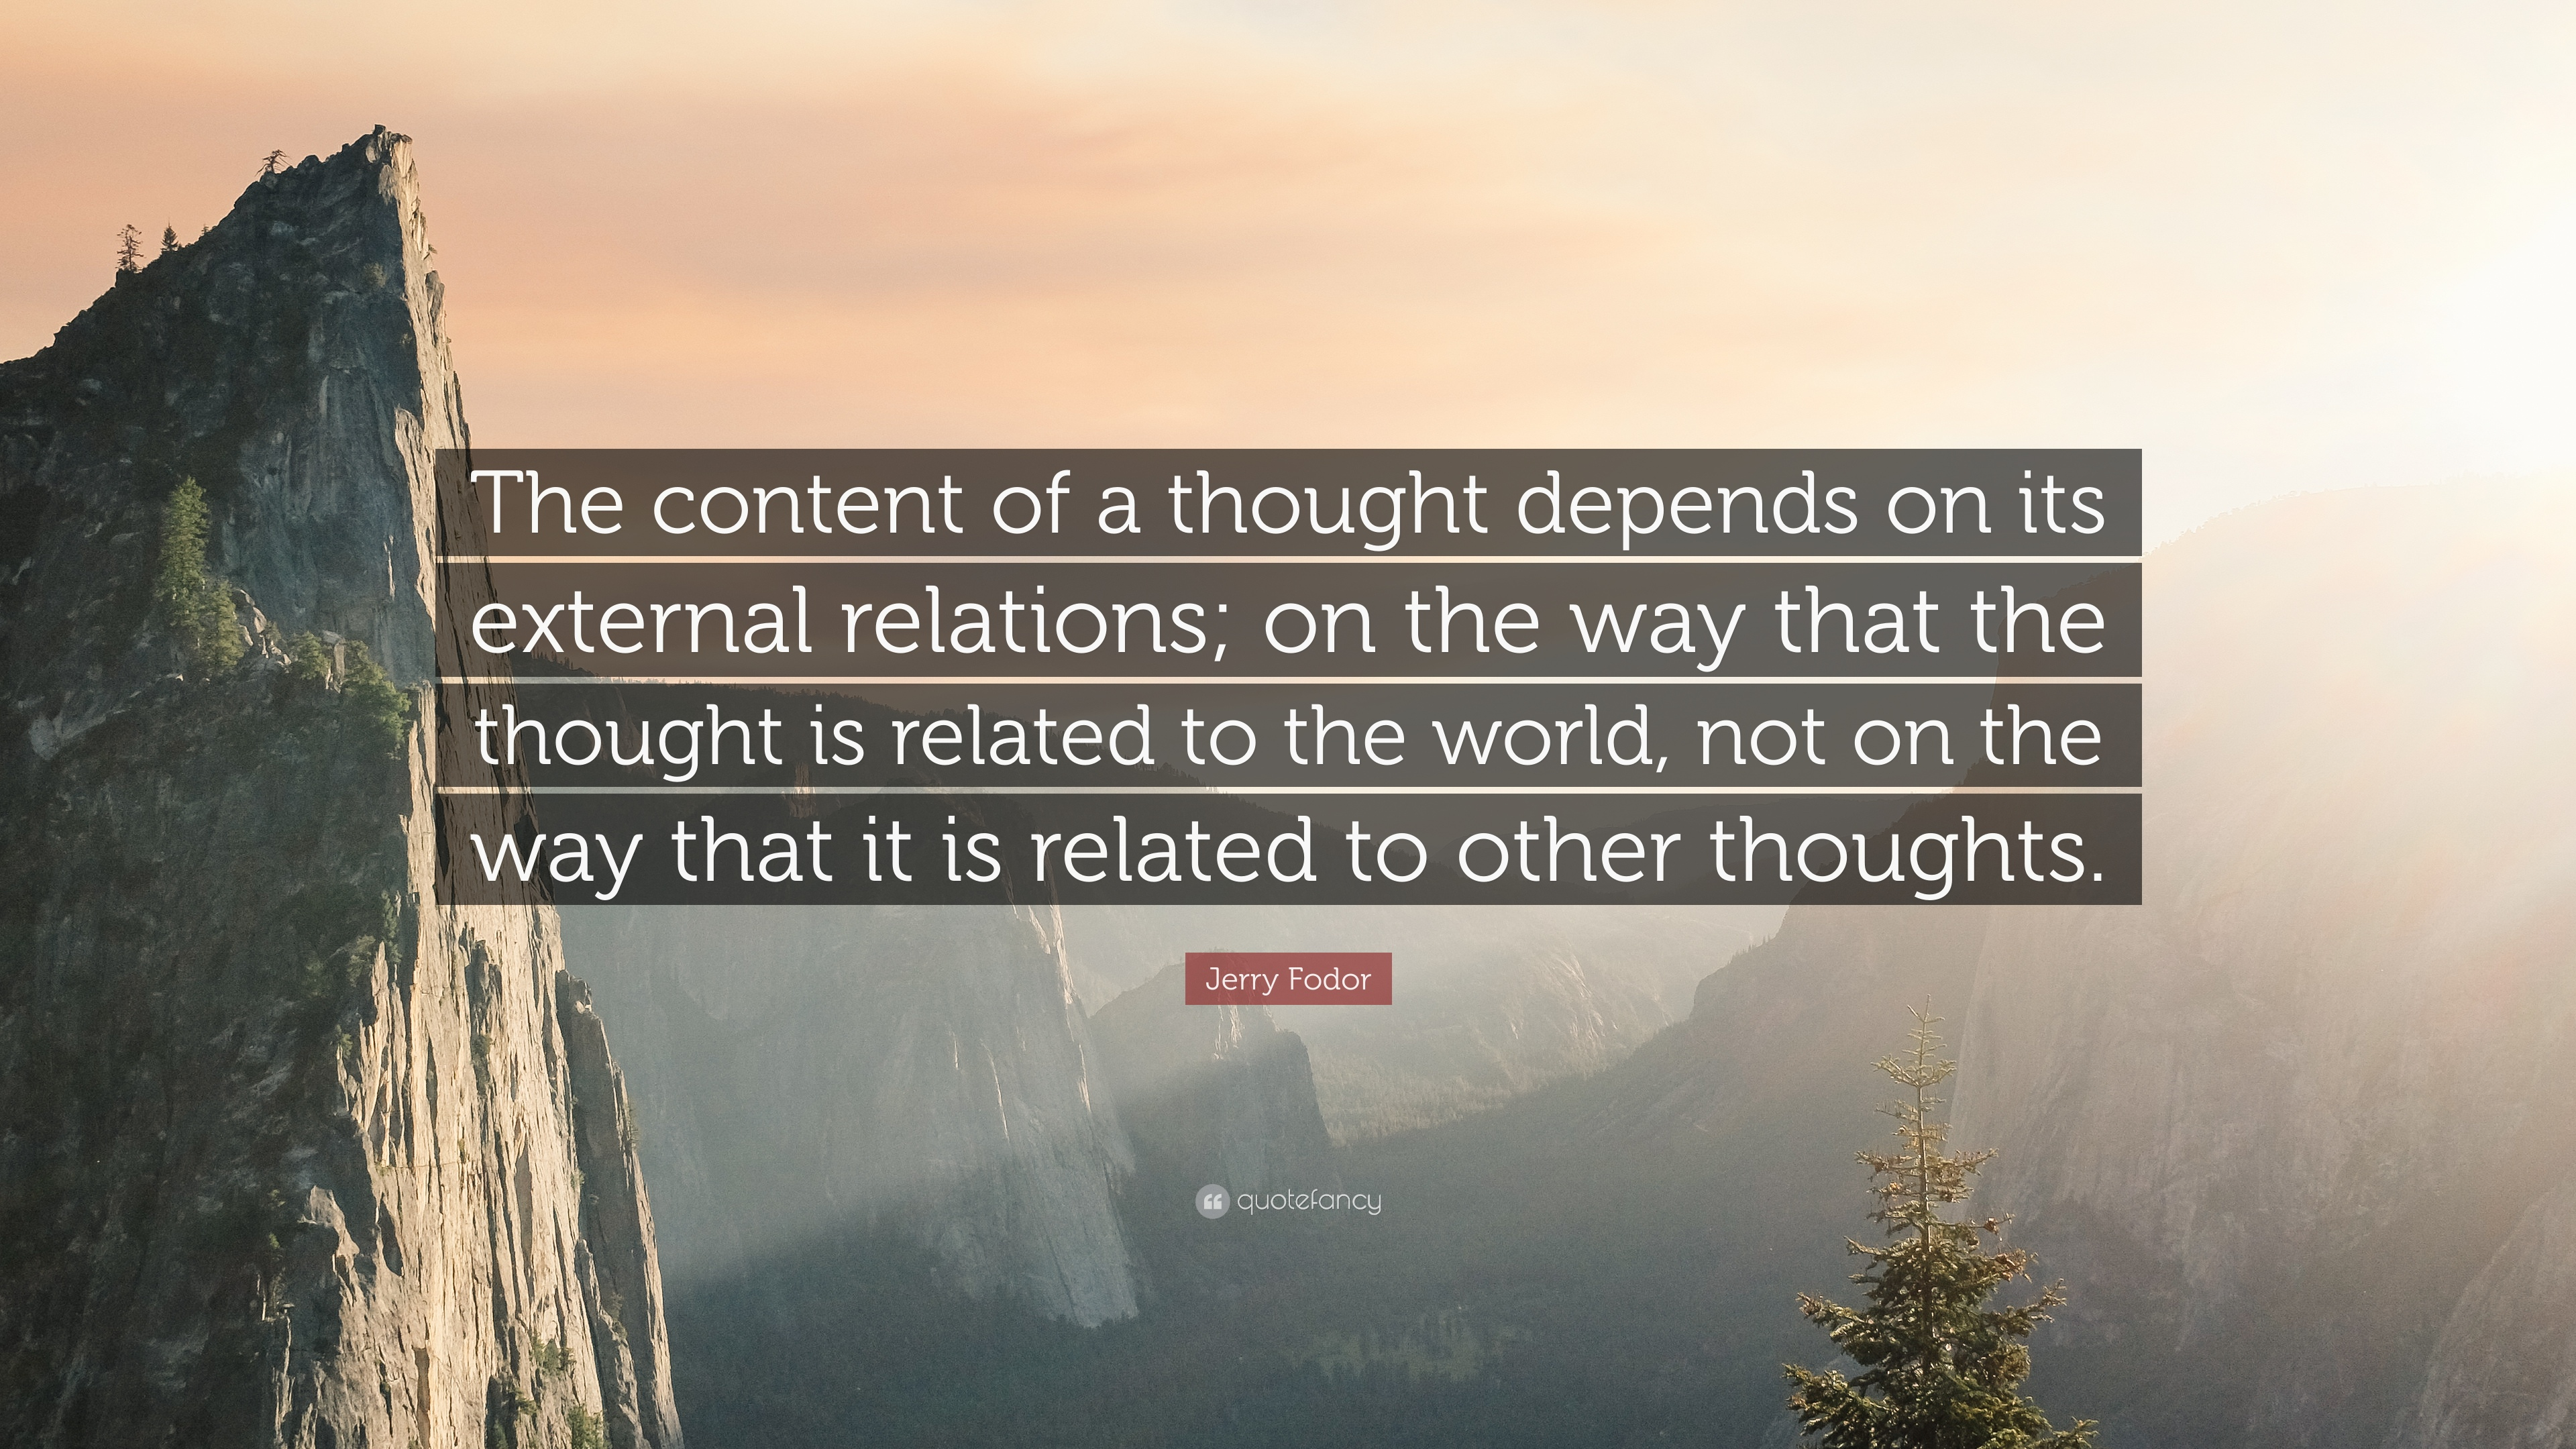 Everything in this world depends on thoughts